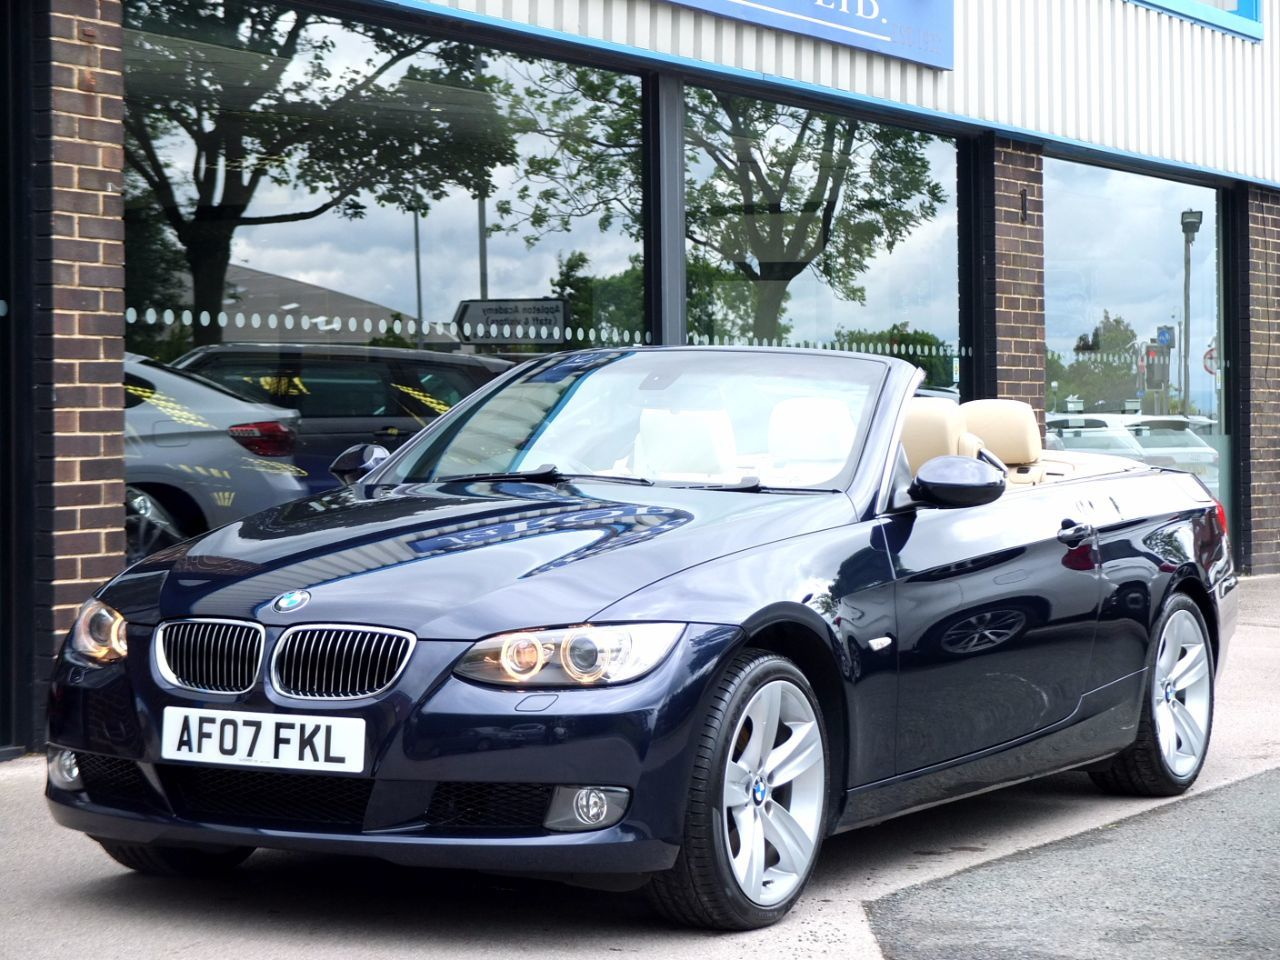 BMW 3 Series 325i SE Convertible 3.0 Convertible Petrol BlueBMW 3 Series 325i SE Convertible 3.0 Convertible Petrol Blue at fa Roper Ltd Bradford